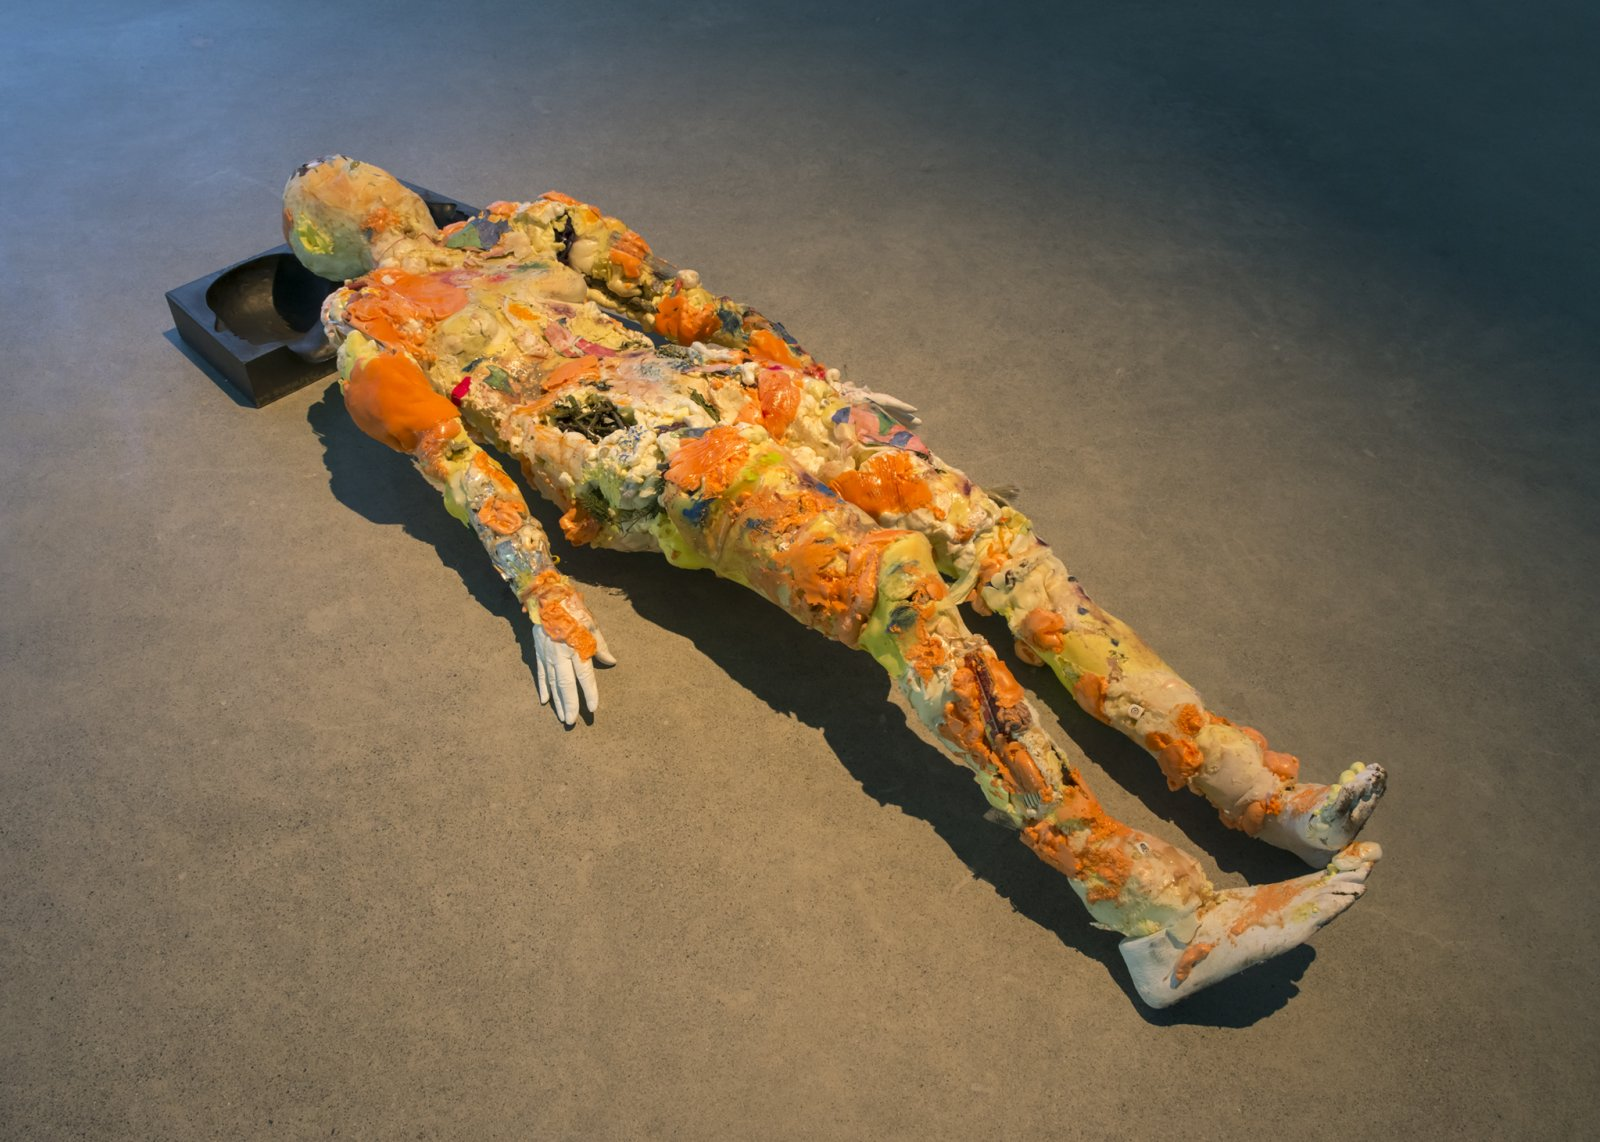 ​​Julia Feyrer, Corpse, Maiden, 2018, mixed media, 71 x 28 x 13 in. (180 x 71 x 33 cm)​ by Julia Feyrer